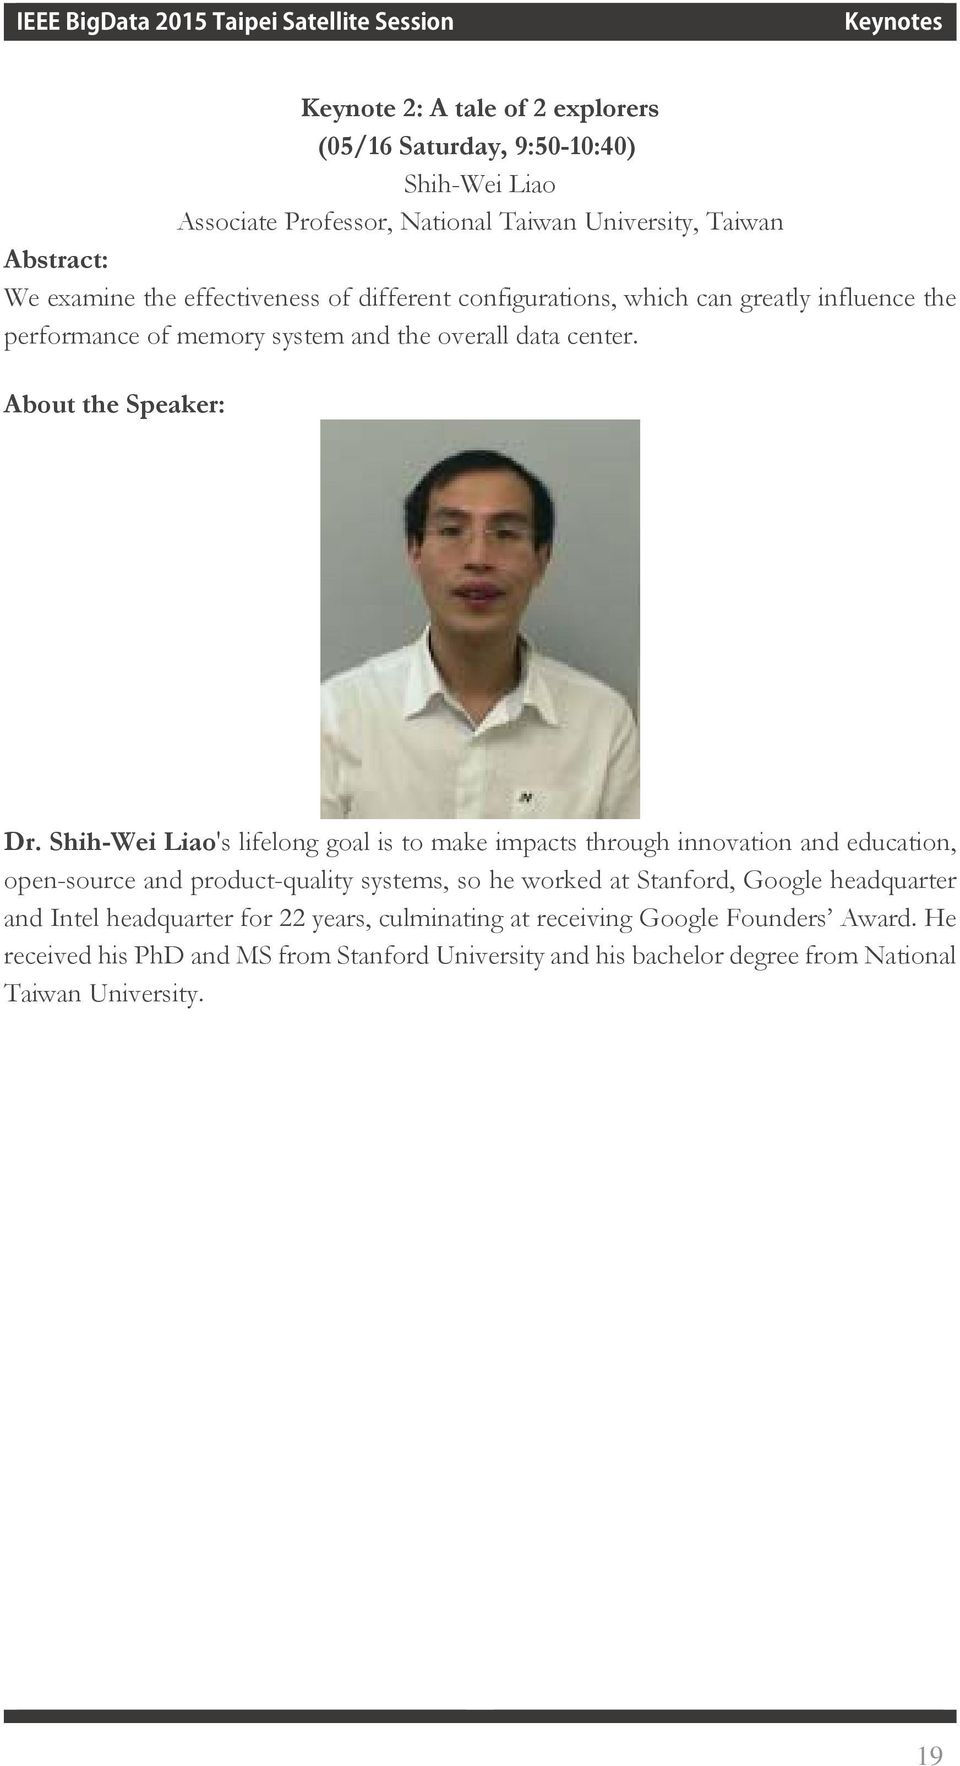 Shih-Wei Liao's lifelong goal is to make impacts through innovation and education, open-source and product-quality systems, so he worked at Stanford, Google headquarter